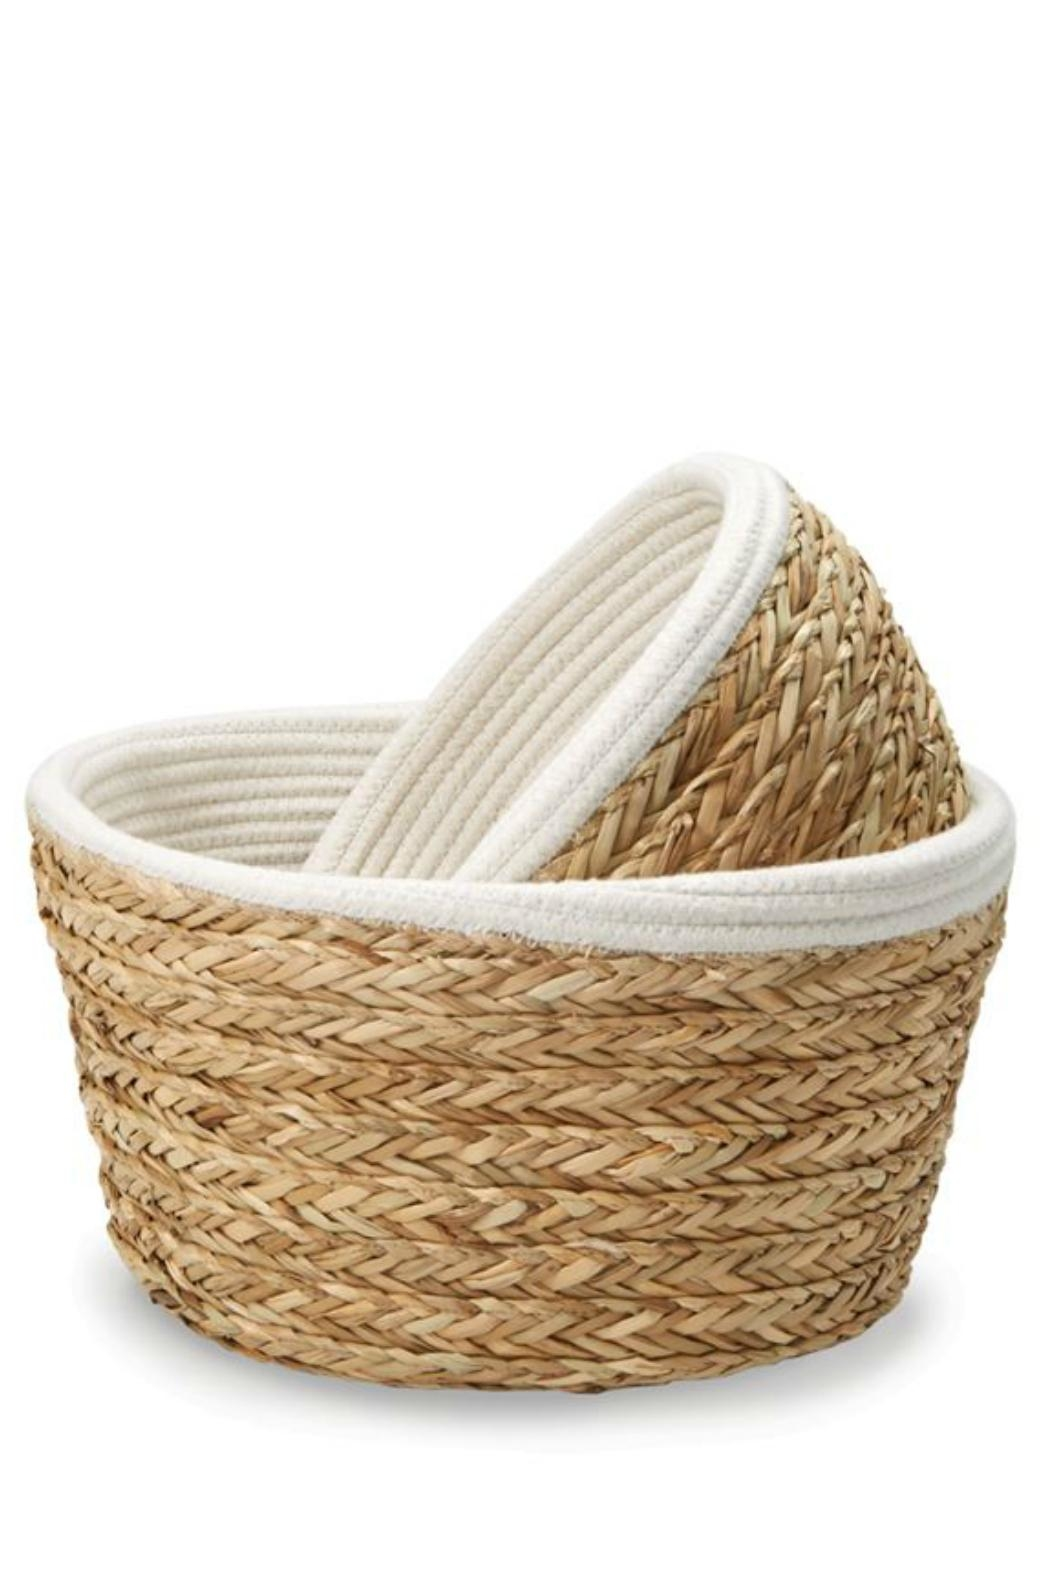 Mud Pie Collapsible Cotton-Straw Basket-Small - Front Full Image